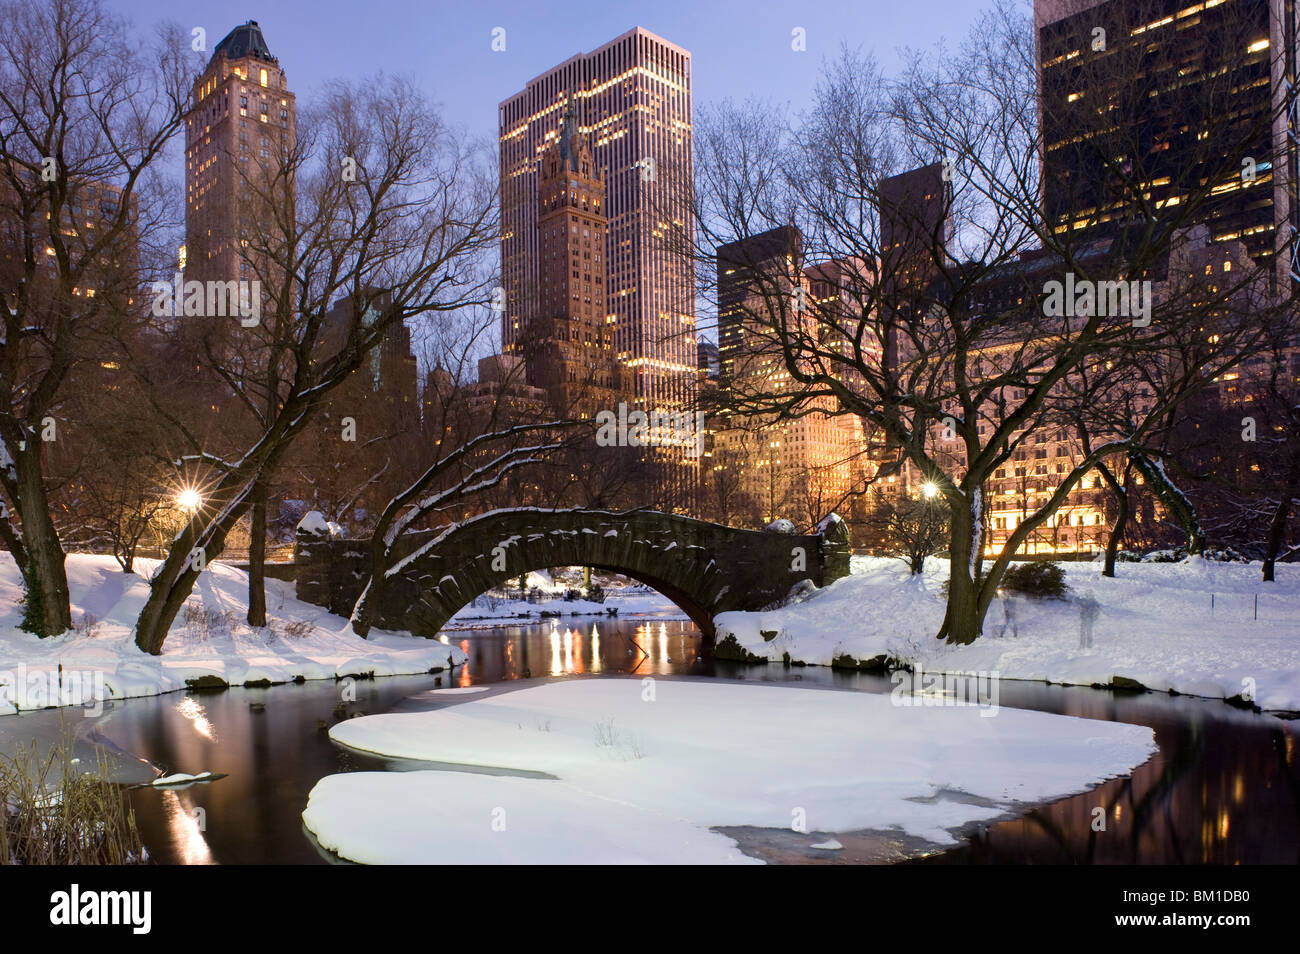 The Gapstow Bridge in Central Park after a snowstorm with skyscrapers behind at dusk, New York City, New York State, - Stock Image